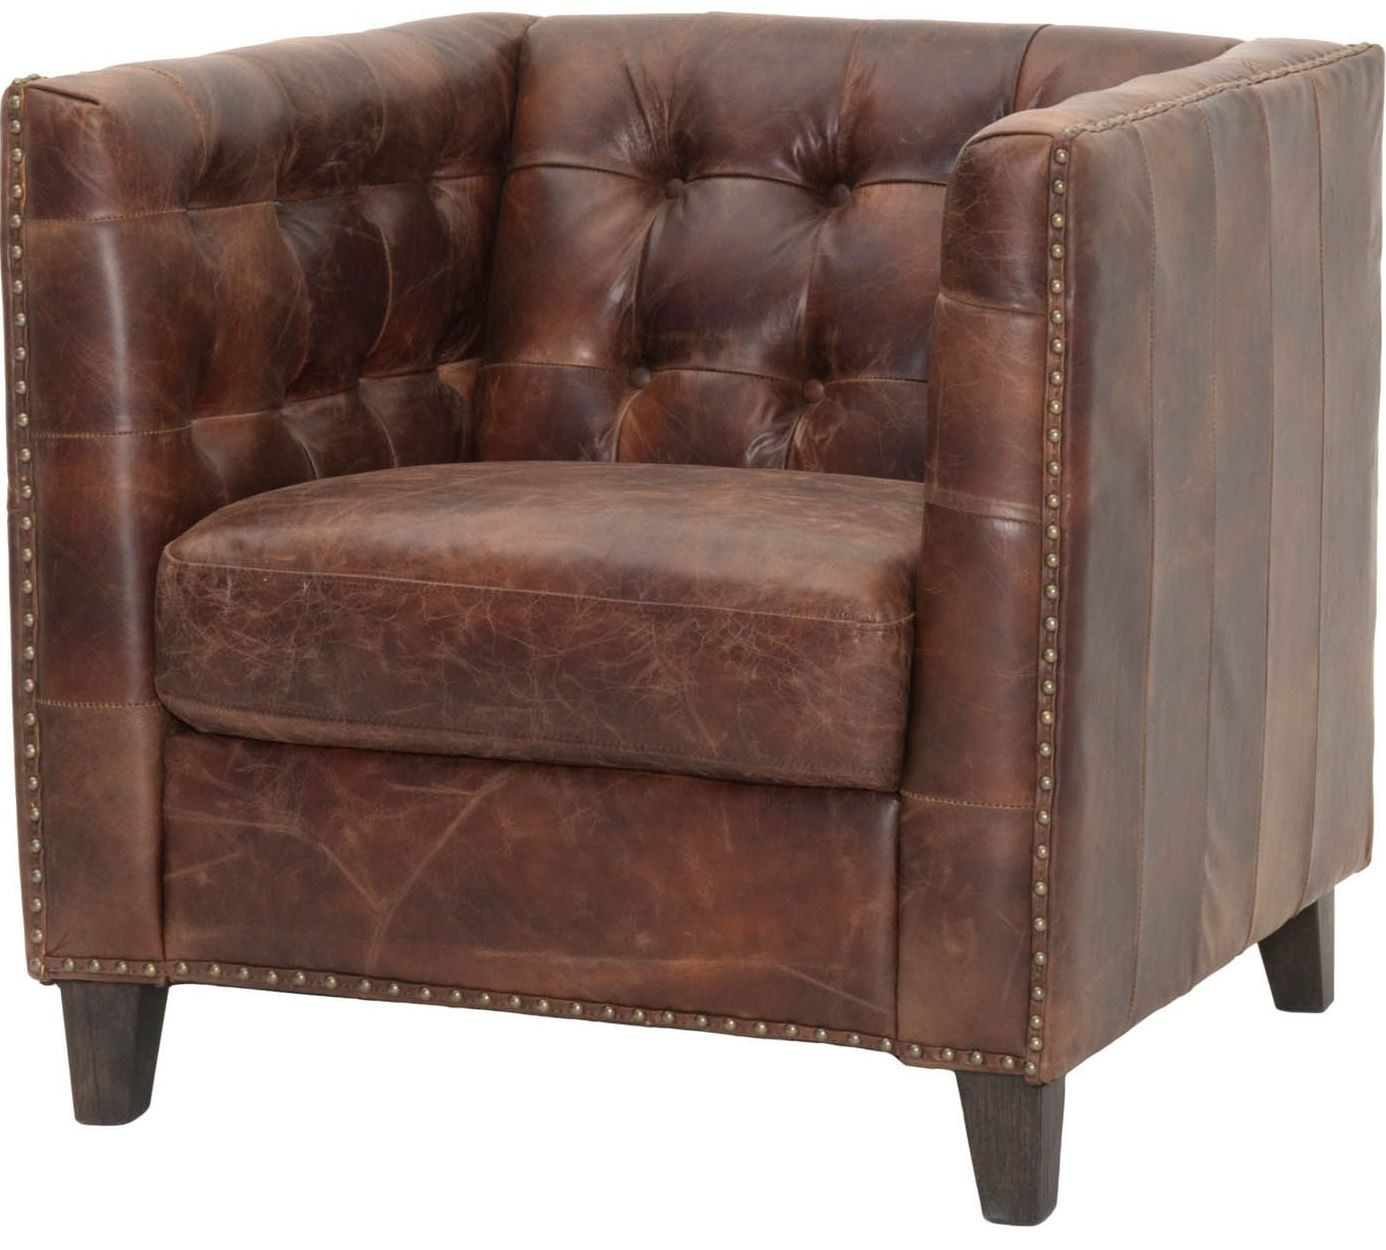 Patina Cafe Ritchey Sofa Chair From Orient Express 8200 1 Ciant Gl C Coleman Furniture